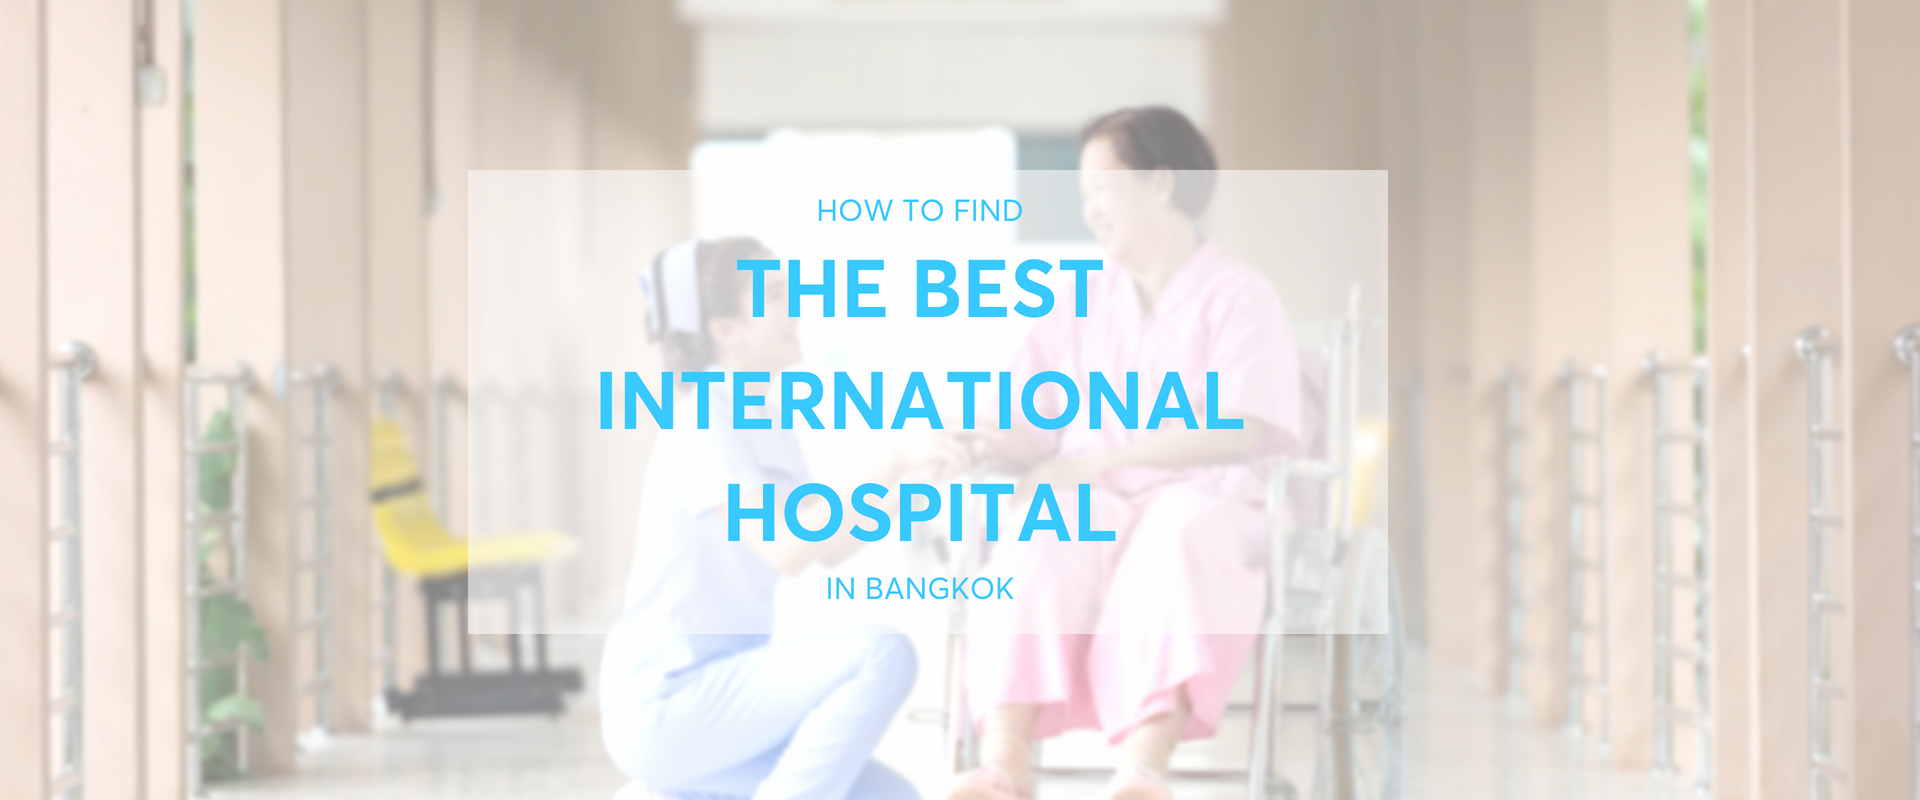 How to Find the Best International Hospital in Bangkok